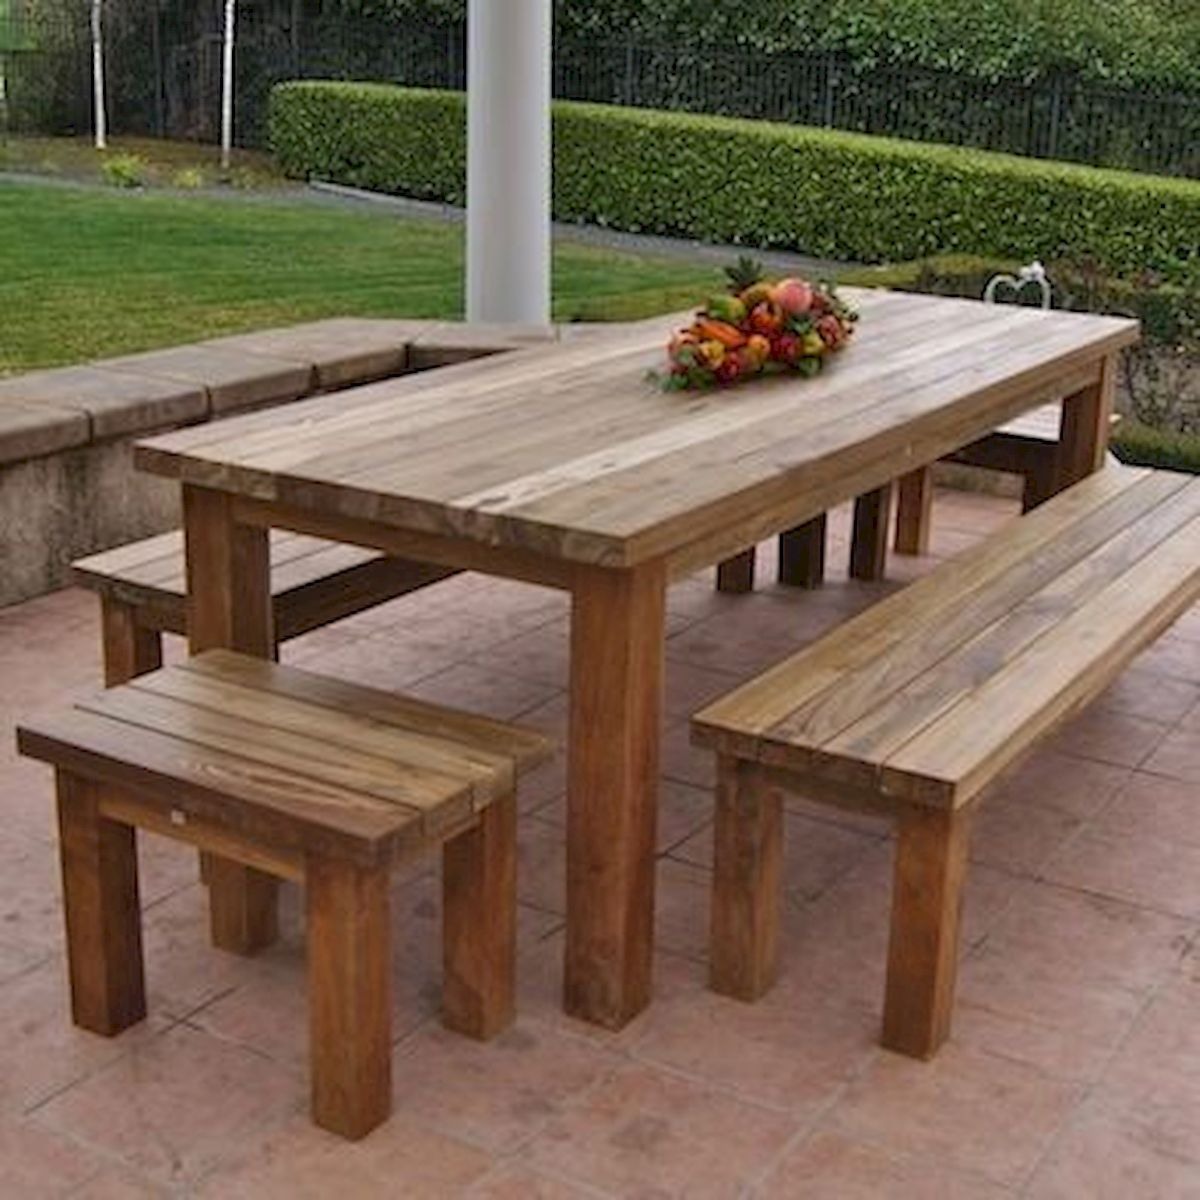 60 Amazing Diy Projects Outdoors Furniture Design Ideas Wood Patio Furniture Teak Patio Furniture Outdoor Furniture Plans